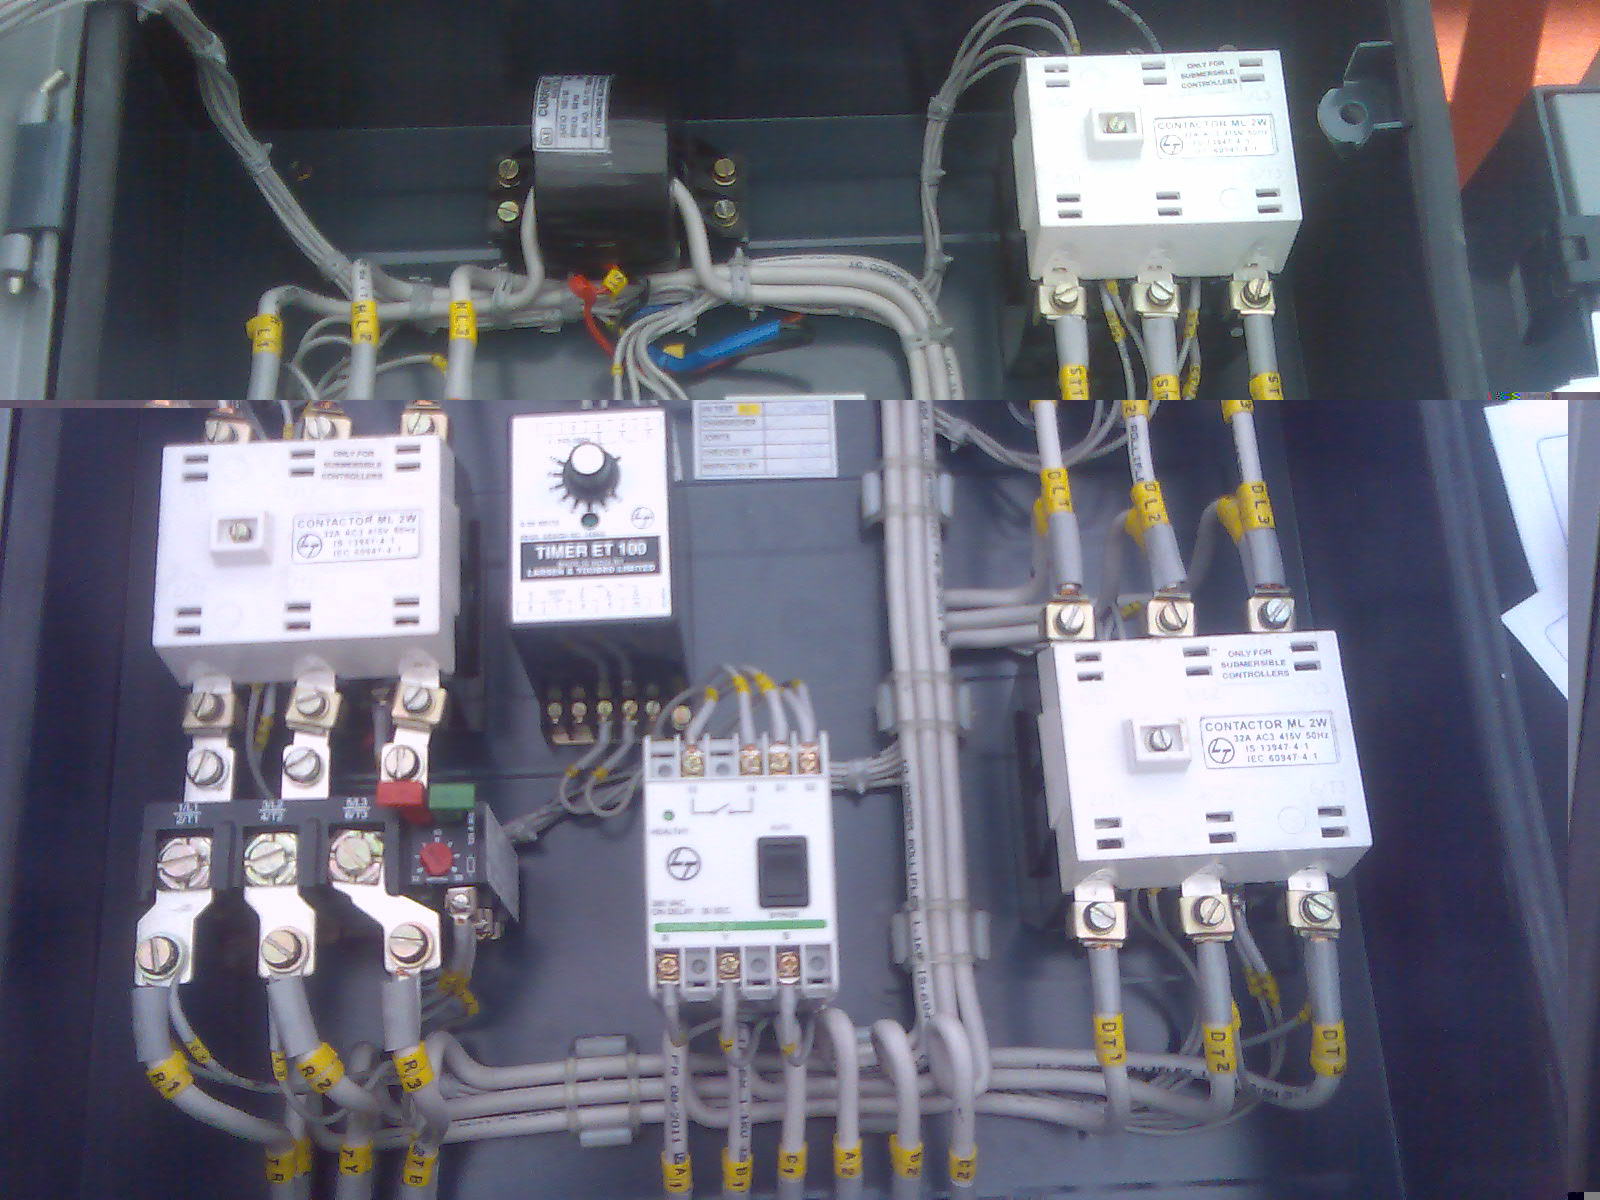 Imtiaz Electrical Engineering: Star Delta Connection on expressjet dba delta connection, three-phase wye connection, y and delta connection, wye delta connection, open delta connection, delta electrical connection, double delta connection, parallel high voltage wye connection, 3 phase delta connection, skywest delta connection, delta delta connection, rear computer older desktop connection,